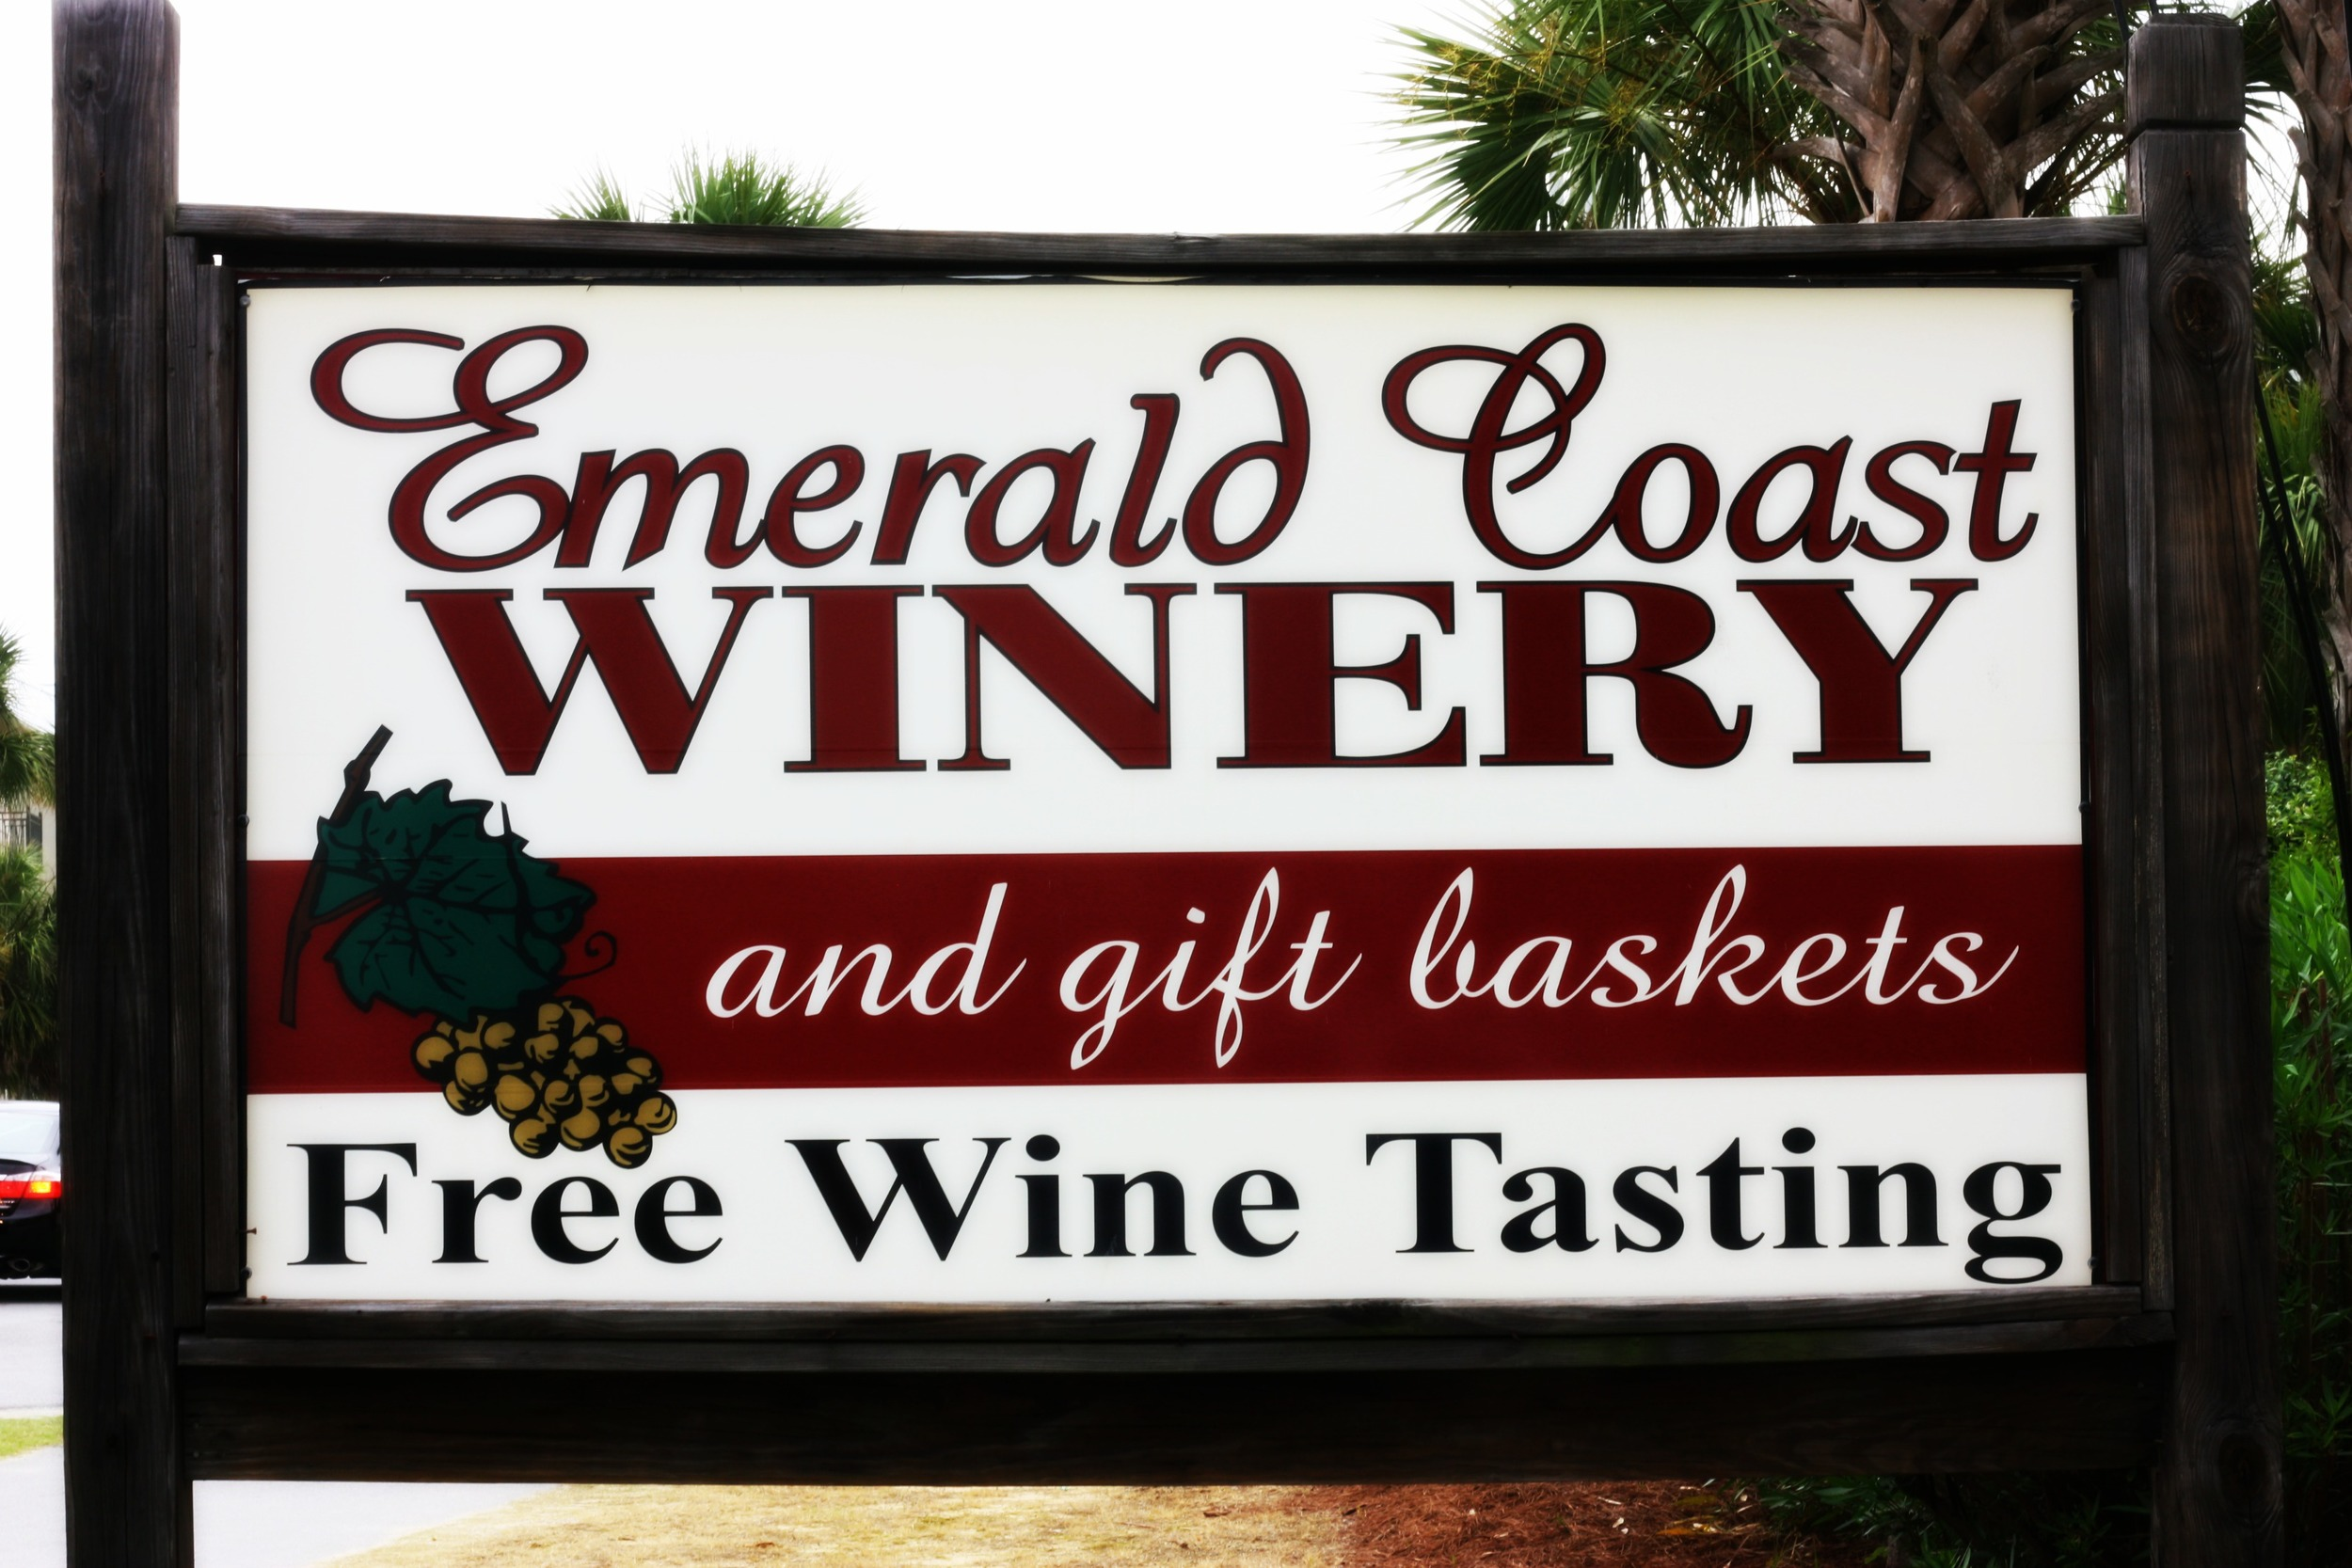 Emerald Coast Winery, Destin | The Gallivant 1.jpg.jpg